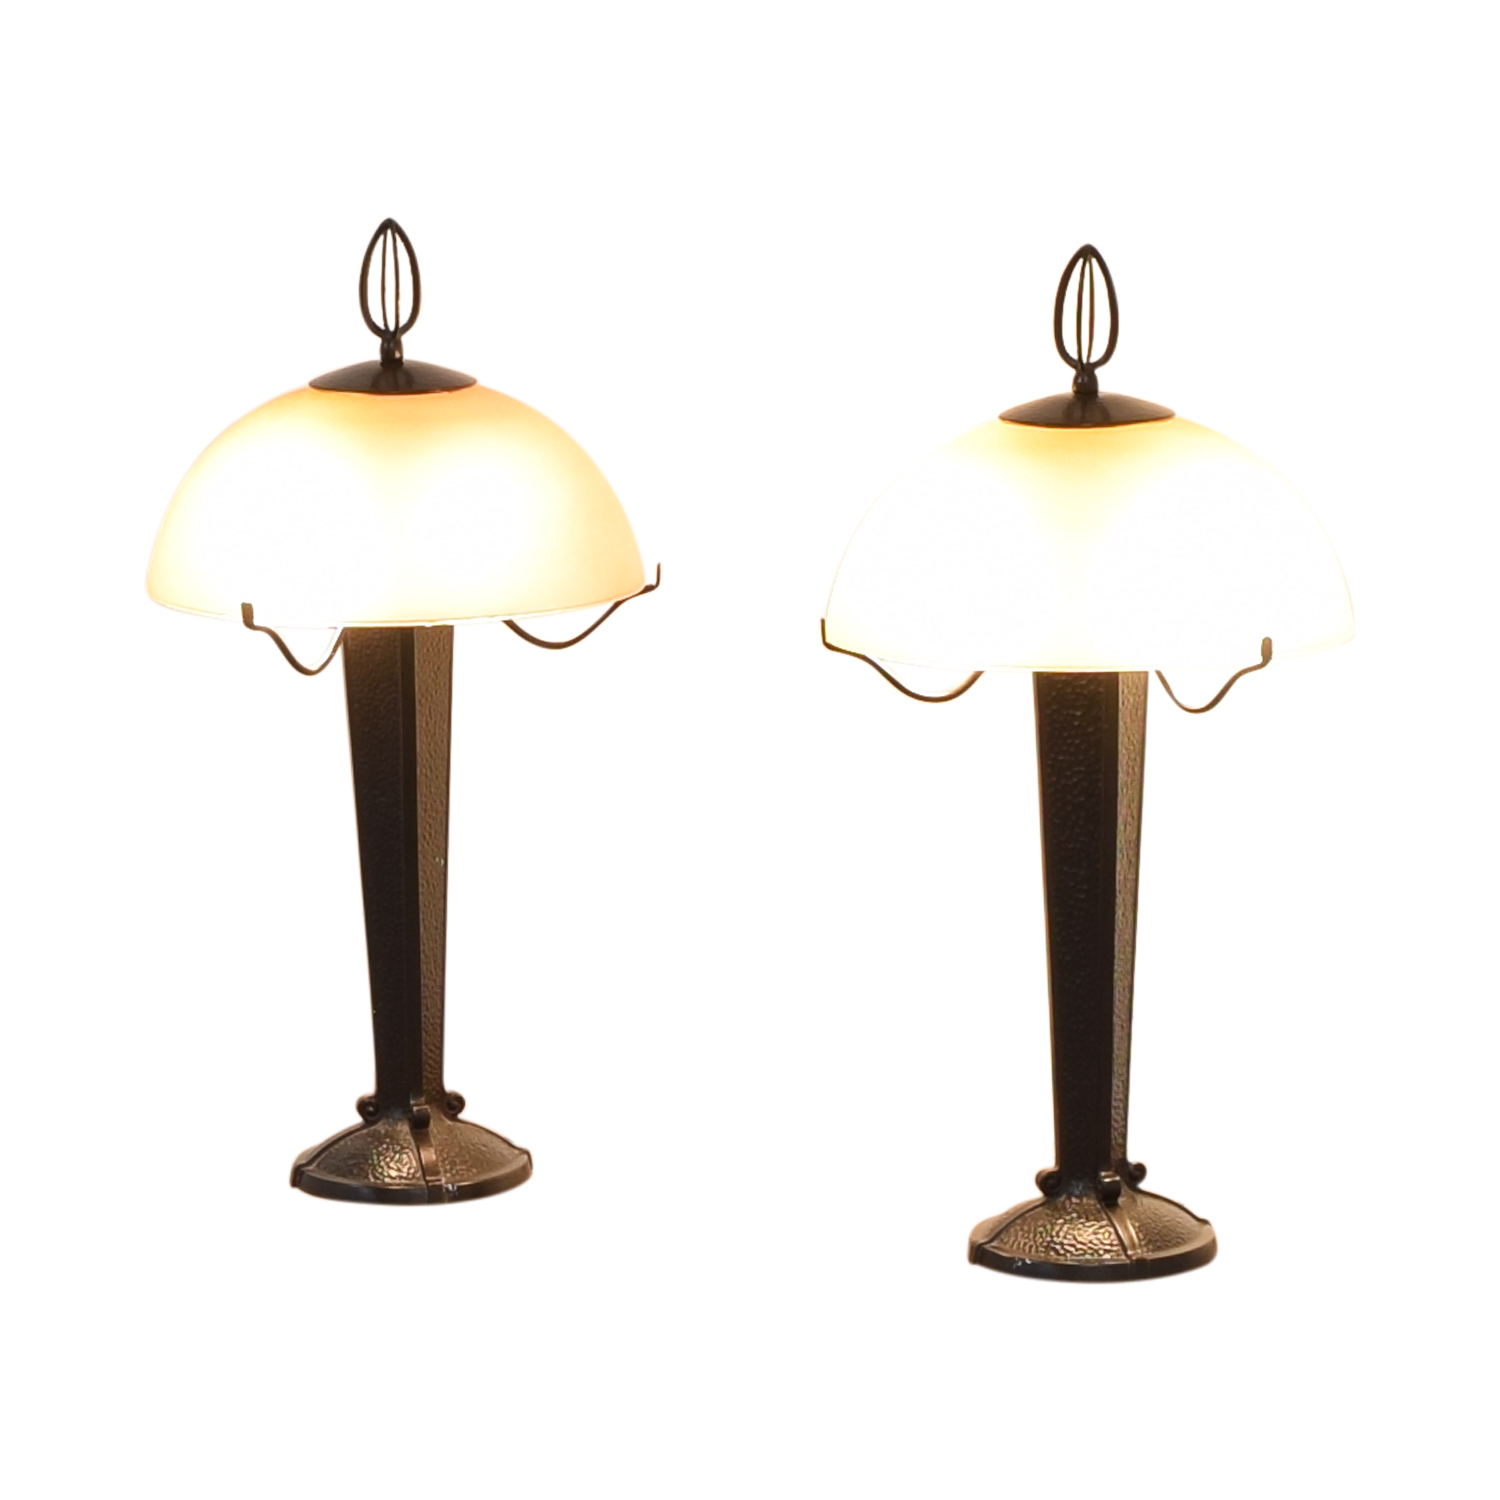 Restoration Hardware Restoration Hardware Craftsman Style Table Lamps ct